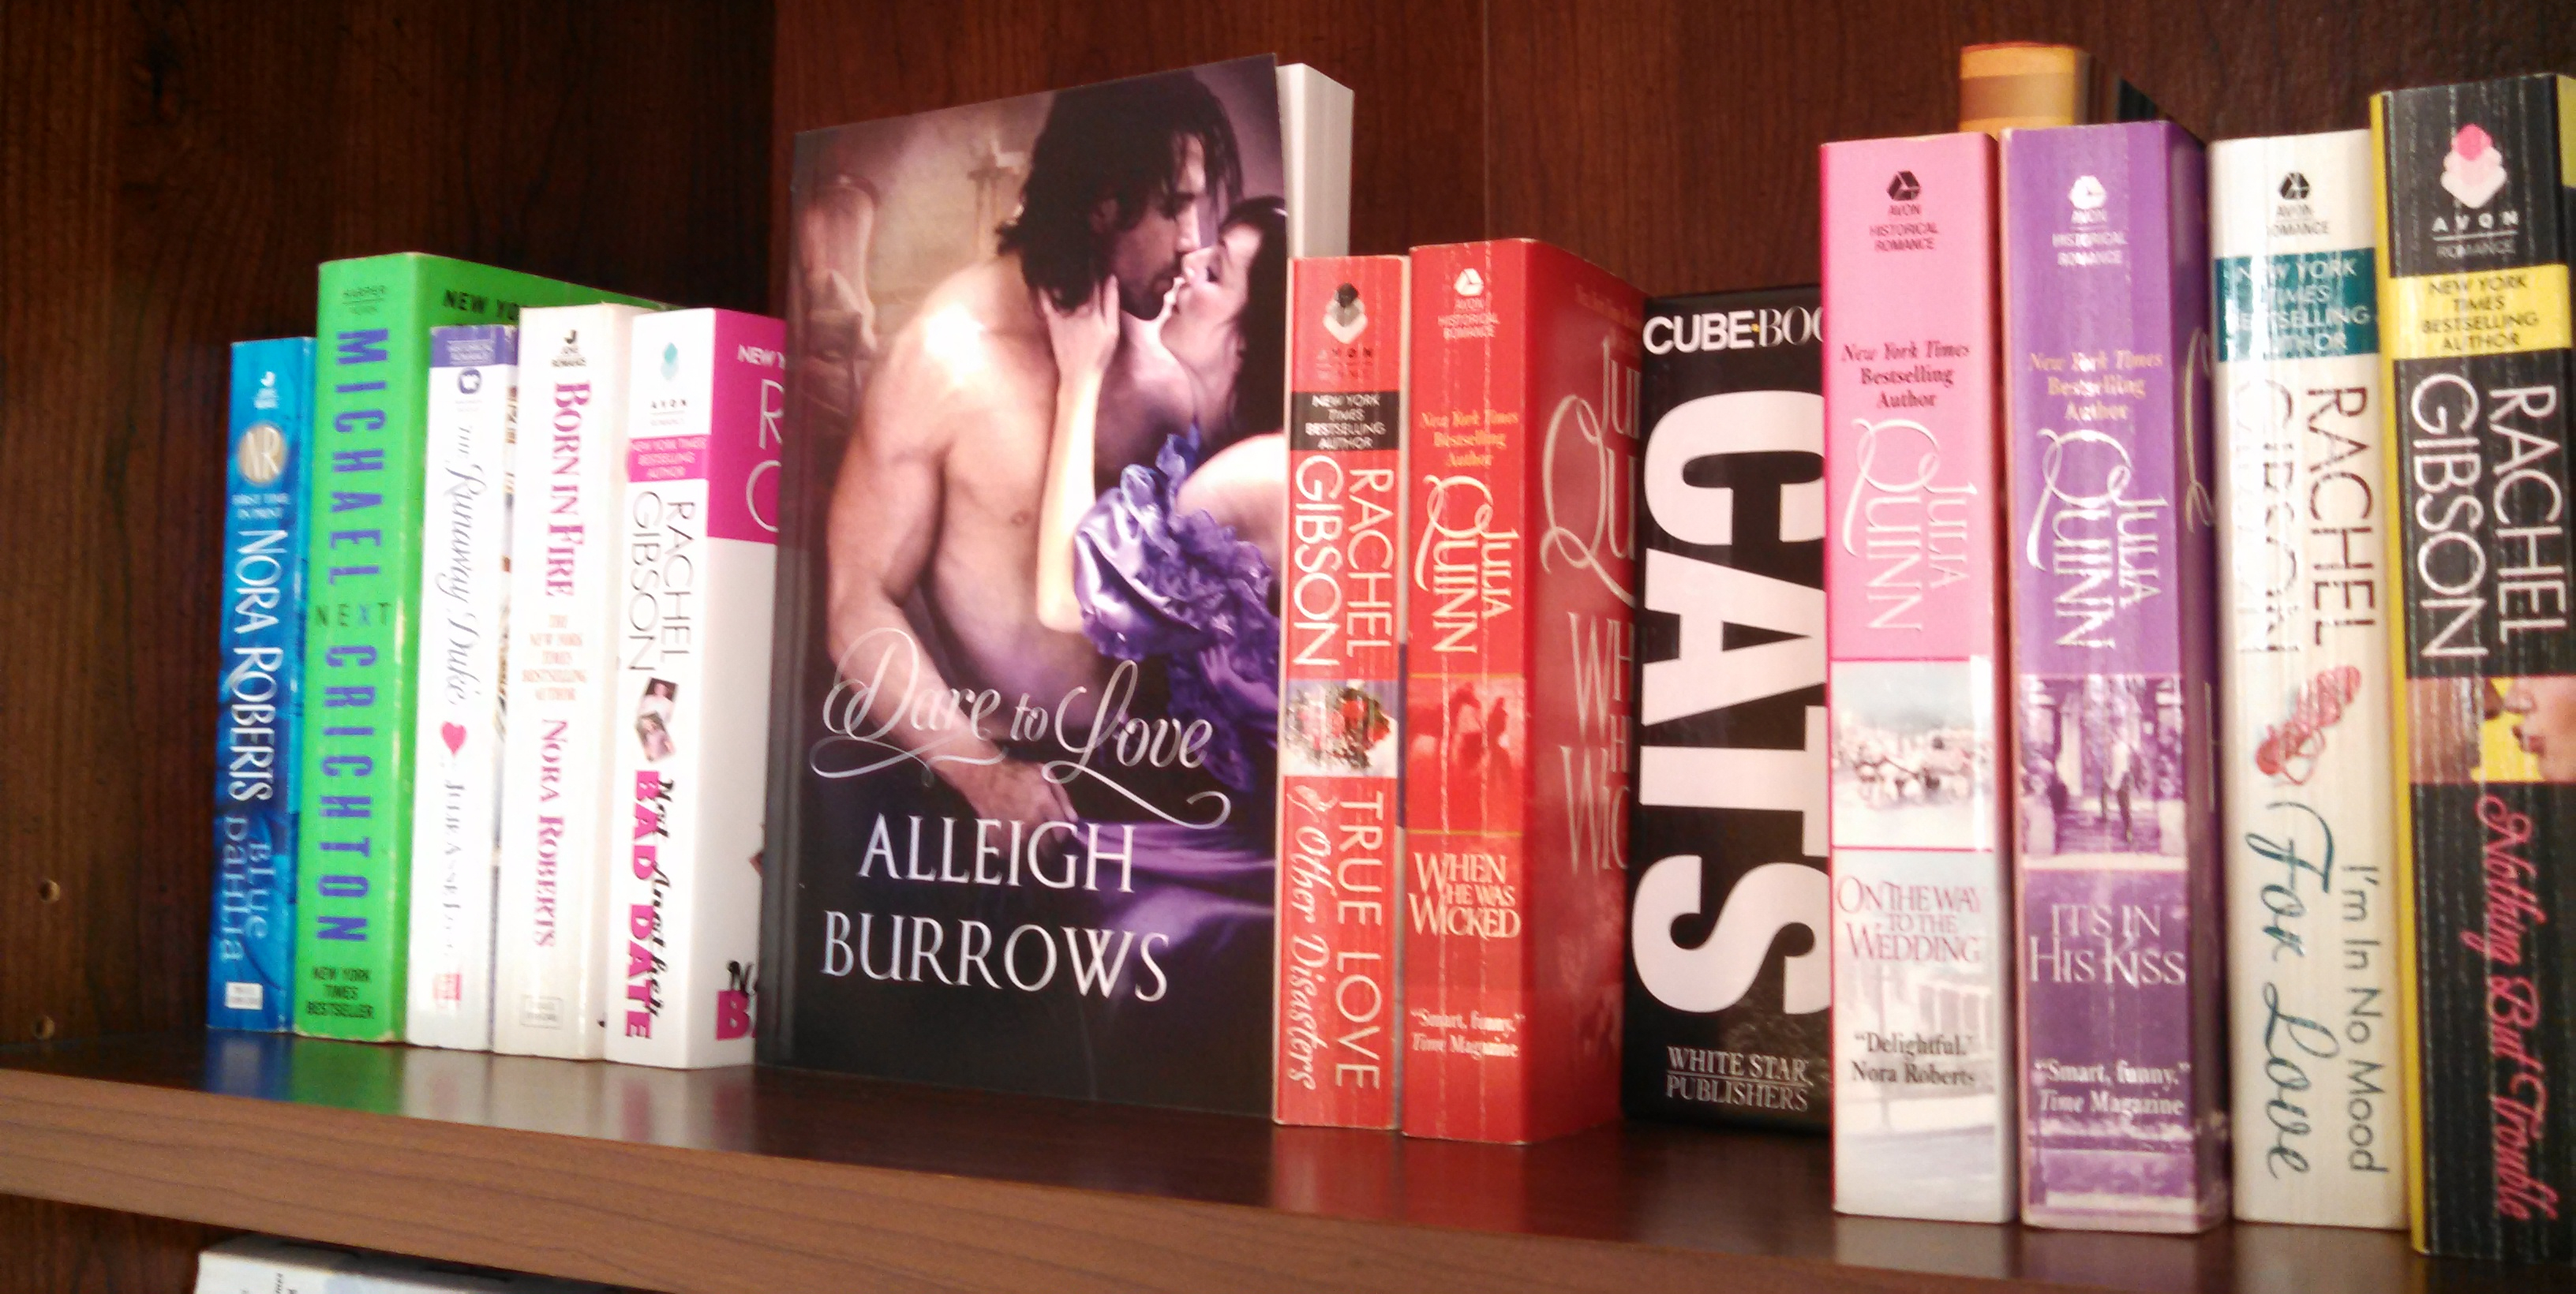 Romance novels and a book of Cats on Alleigh Burrows bookshelf